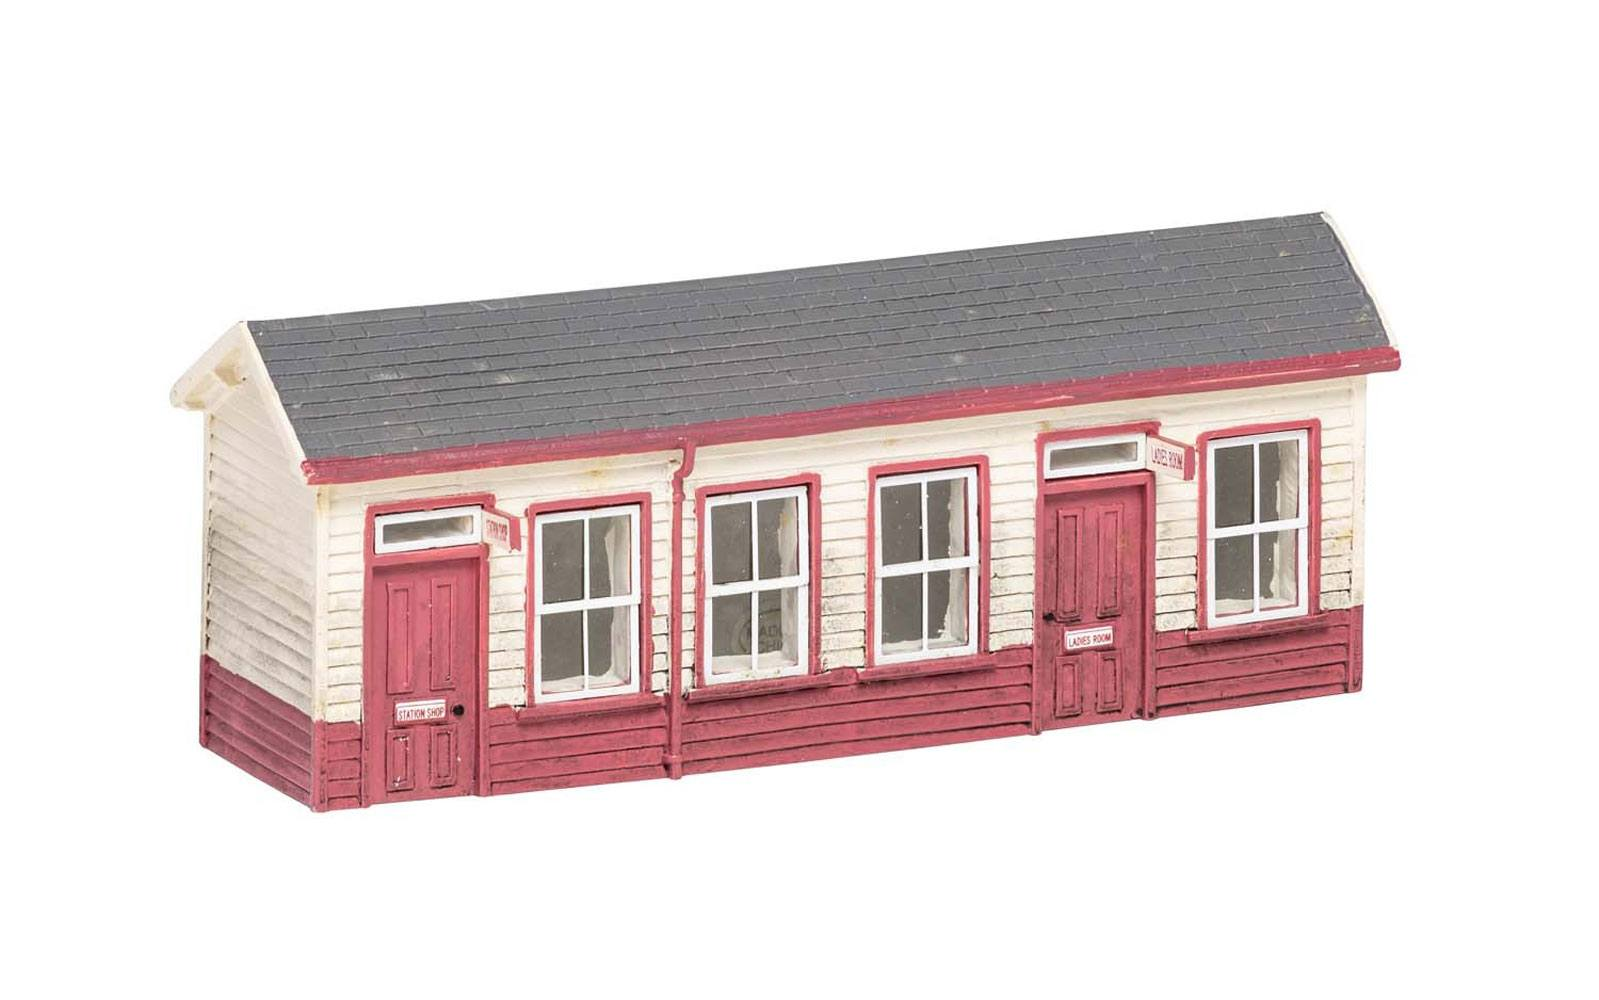 Harry Potter Model Railway Building 1/76 Hogsmeade Station - Waiting Room